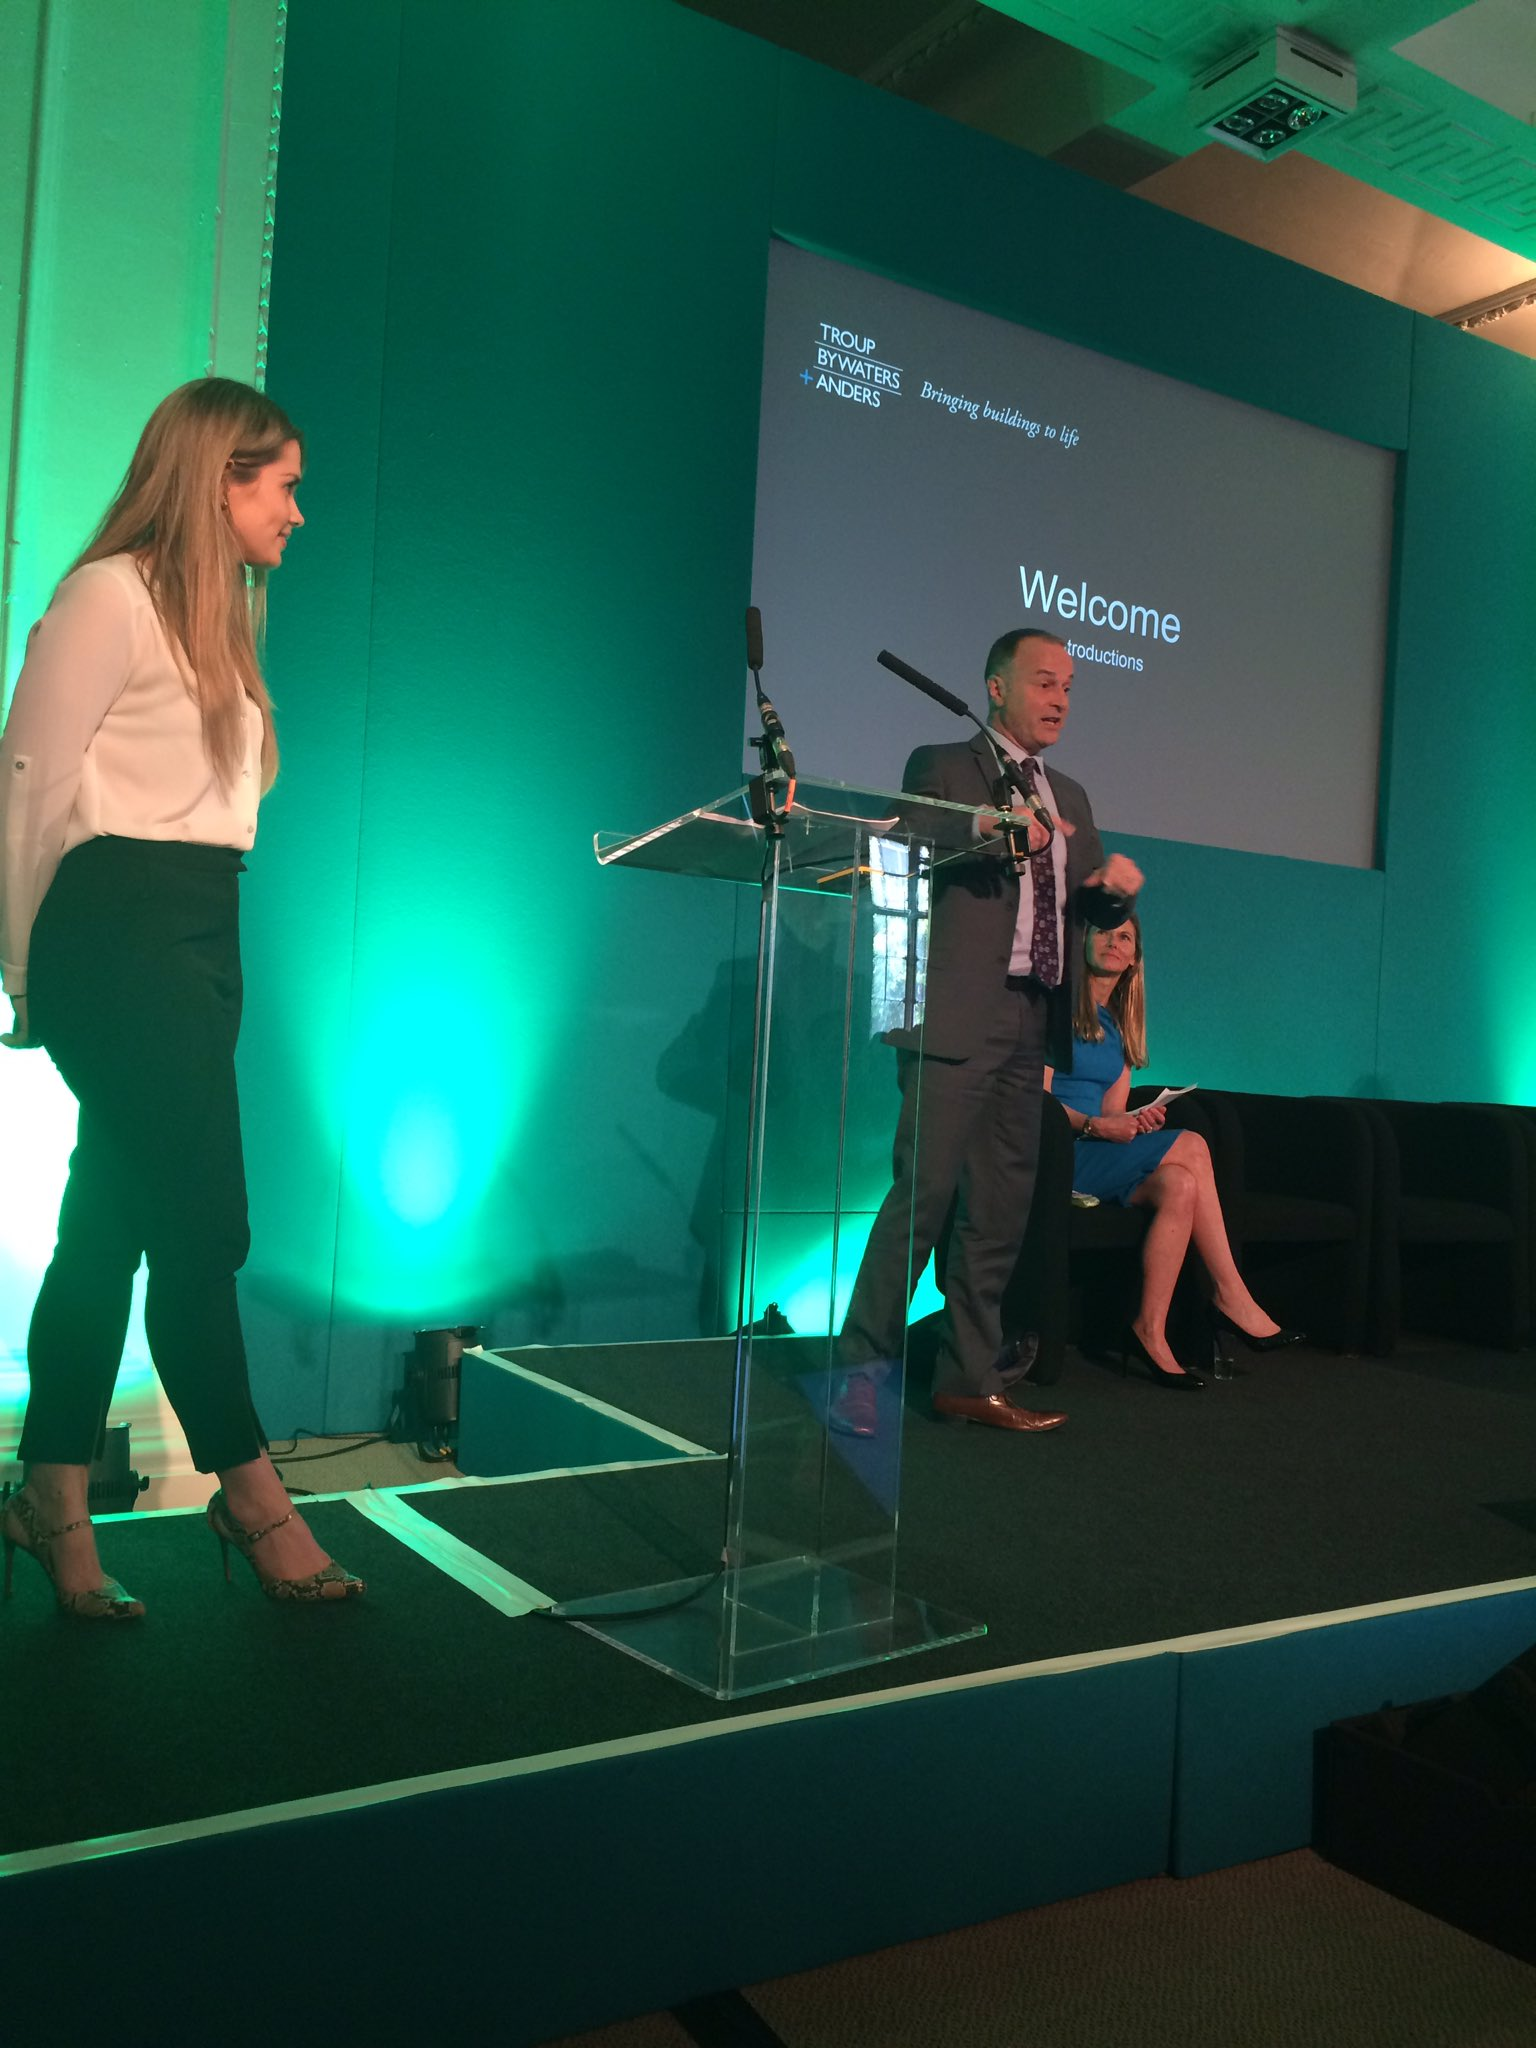 #cipdldshow Managing Partner Peter Anderson & HR Manager Claire Oliver opening the @TroupBywaters Apprenticeship presentation @CIPD_Events https://t.co/fATw5sjgWA